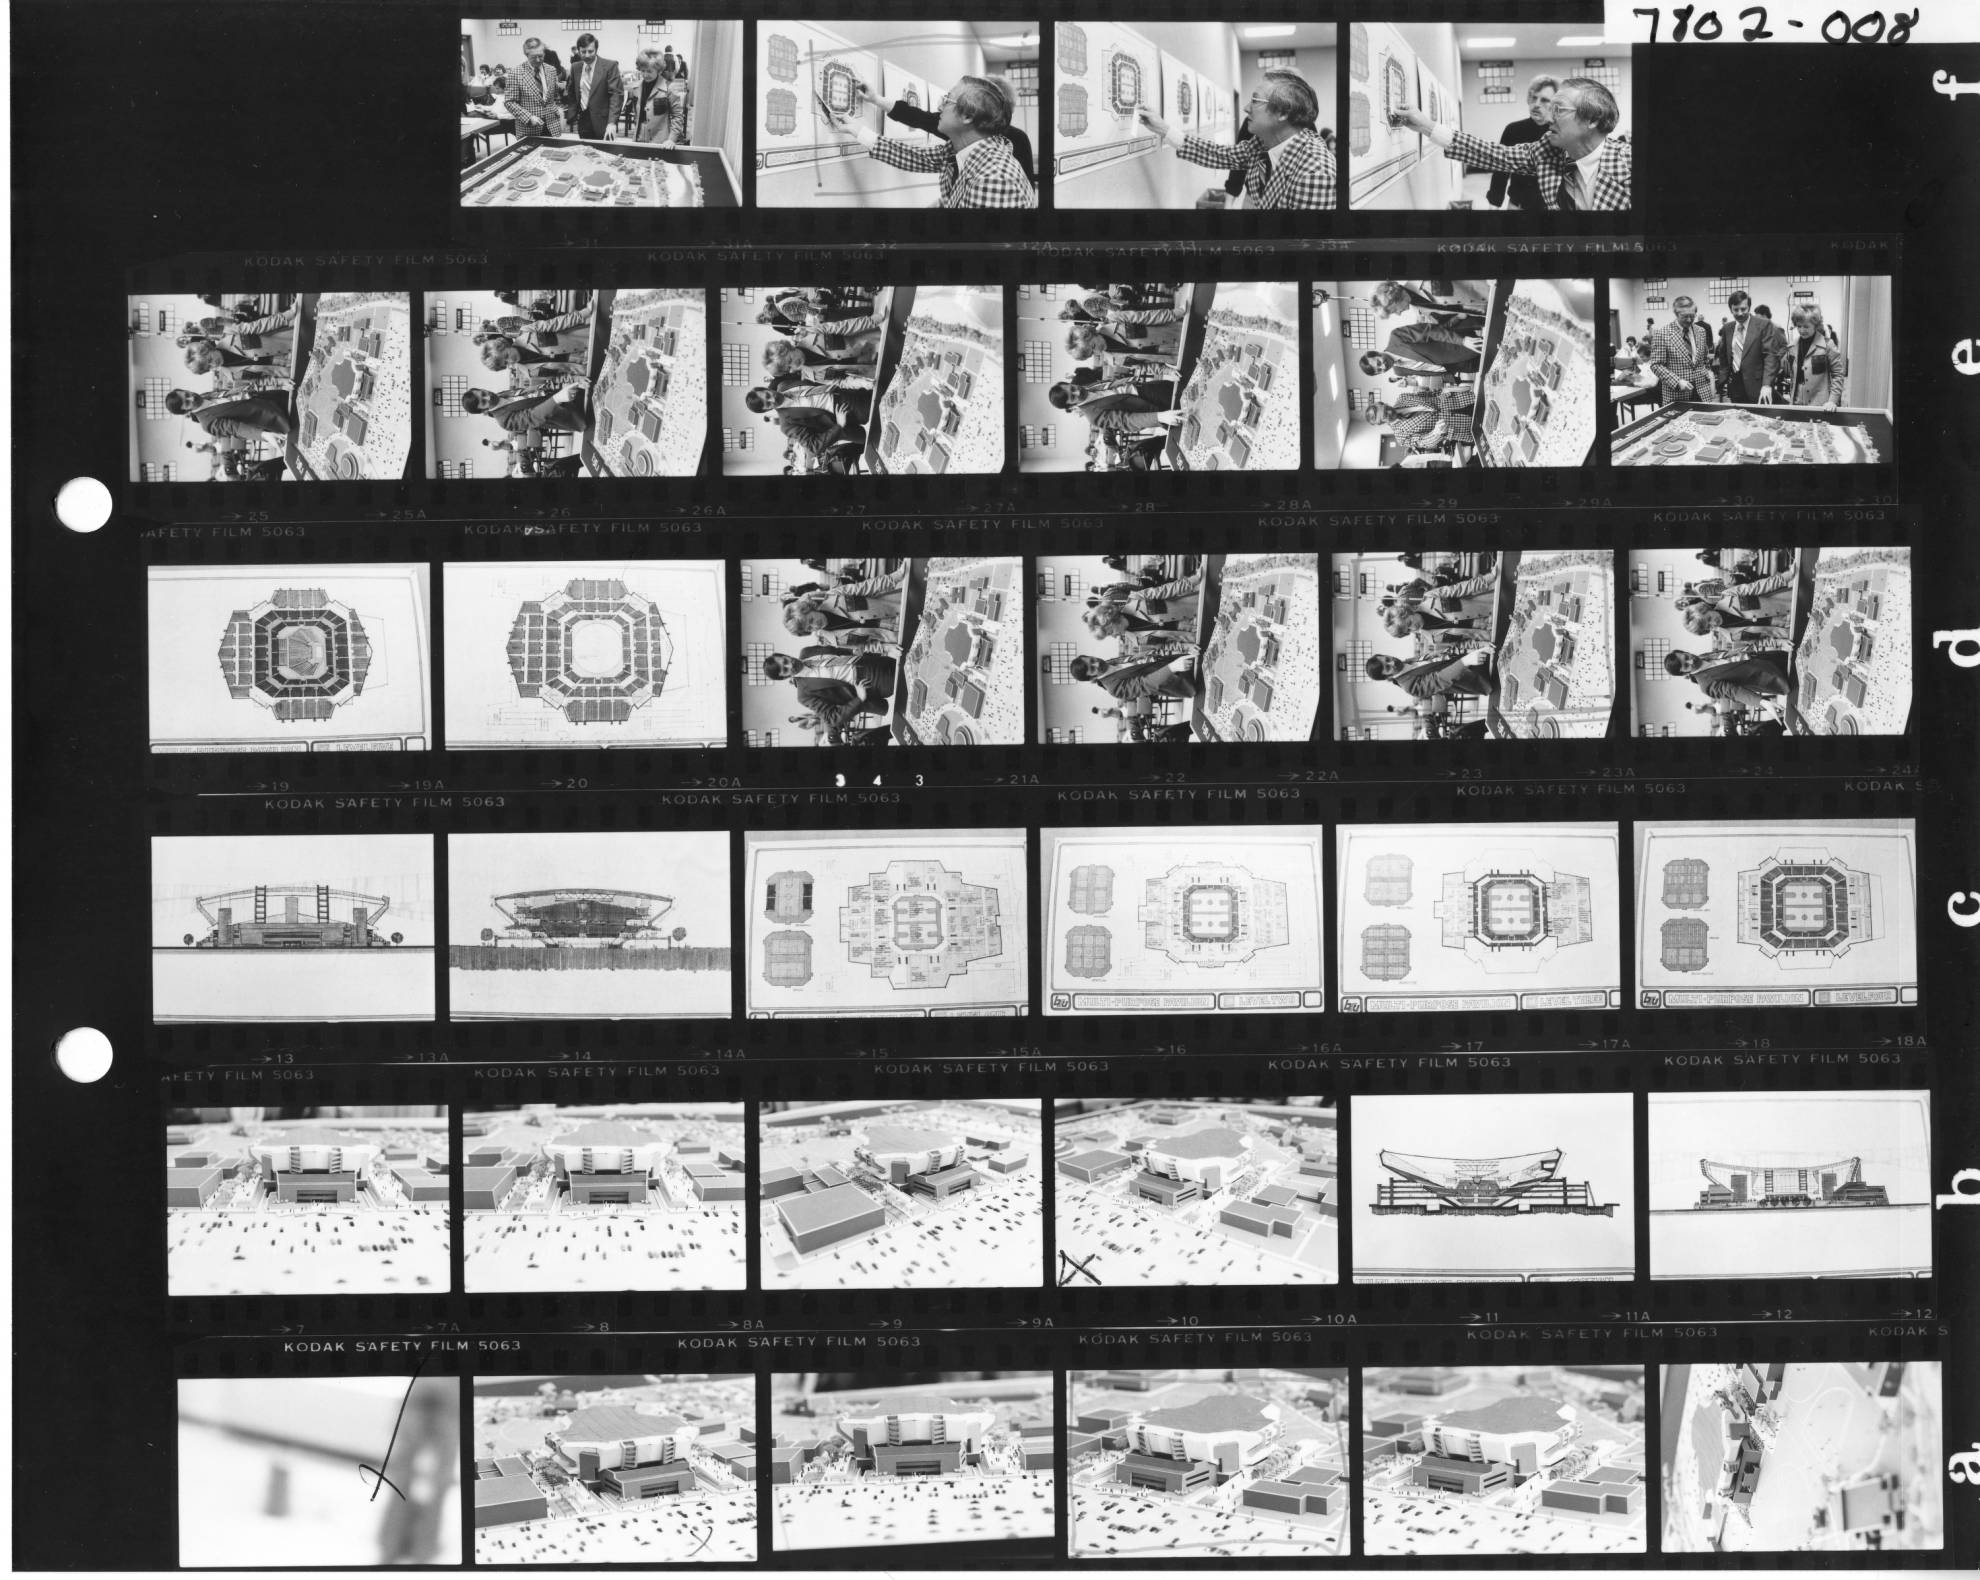 Contact sheet of building plan/models. Provided by BSU Special Collections.